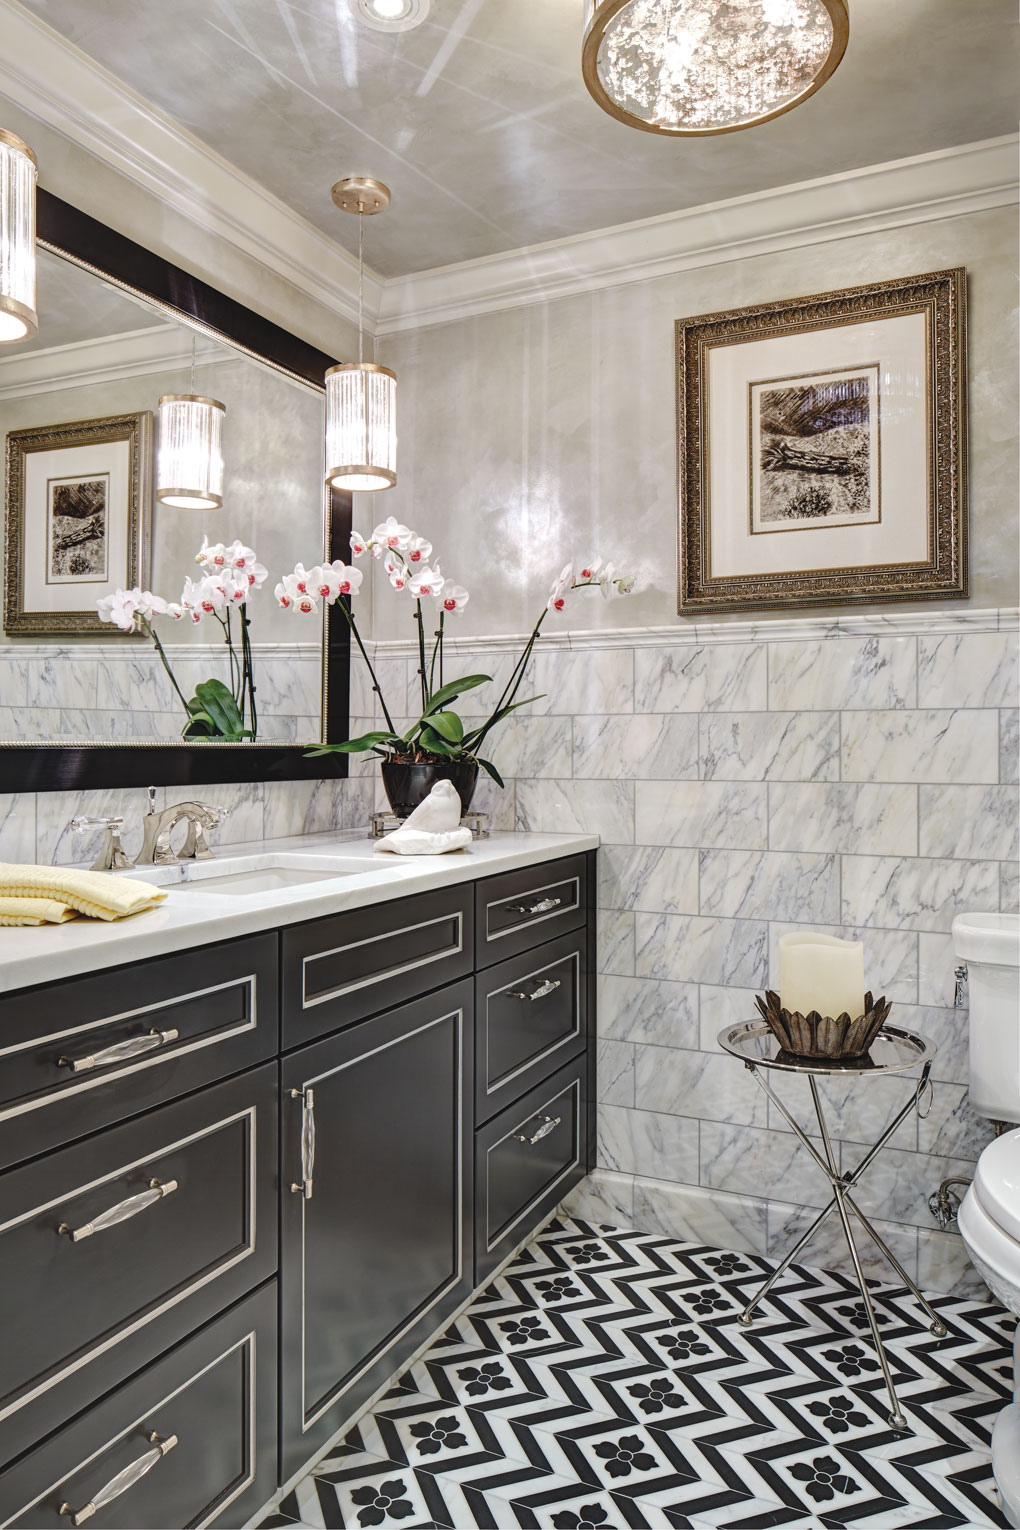 A bathroom with a sophisticated neutral color palette features tiled floor, marble walls, and chandeliers over the vanity.